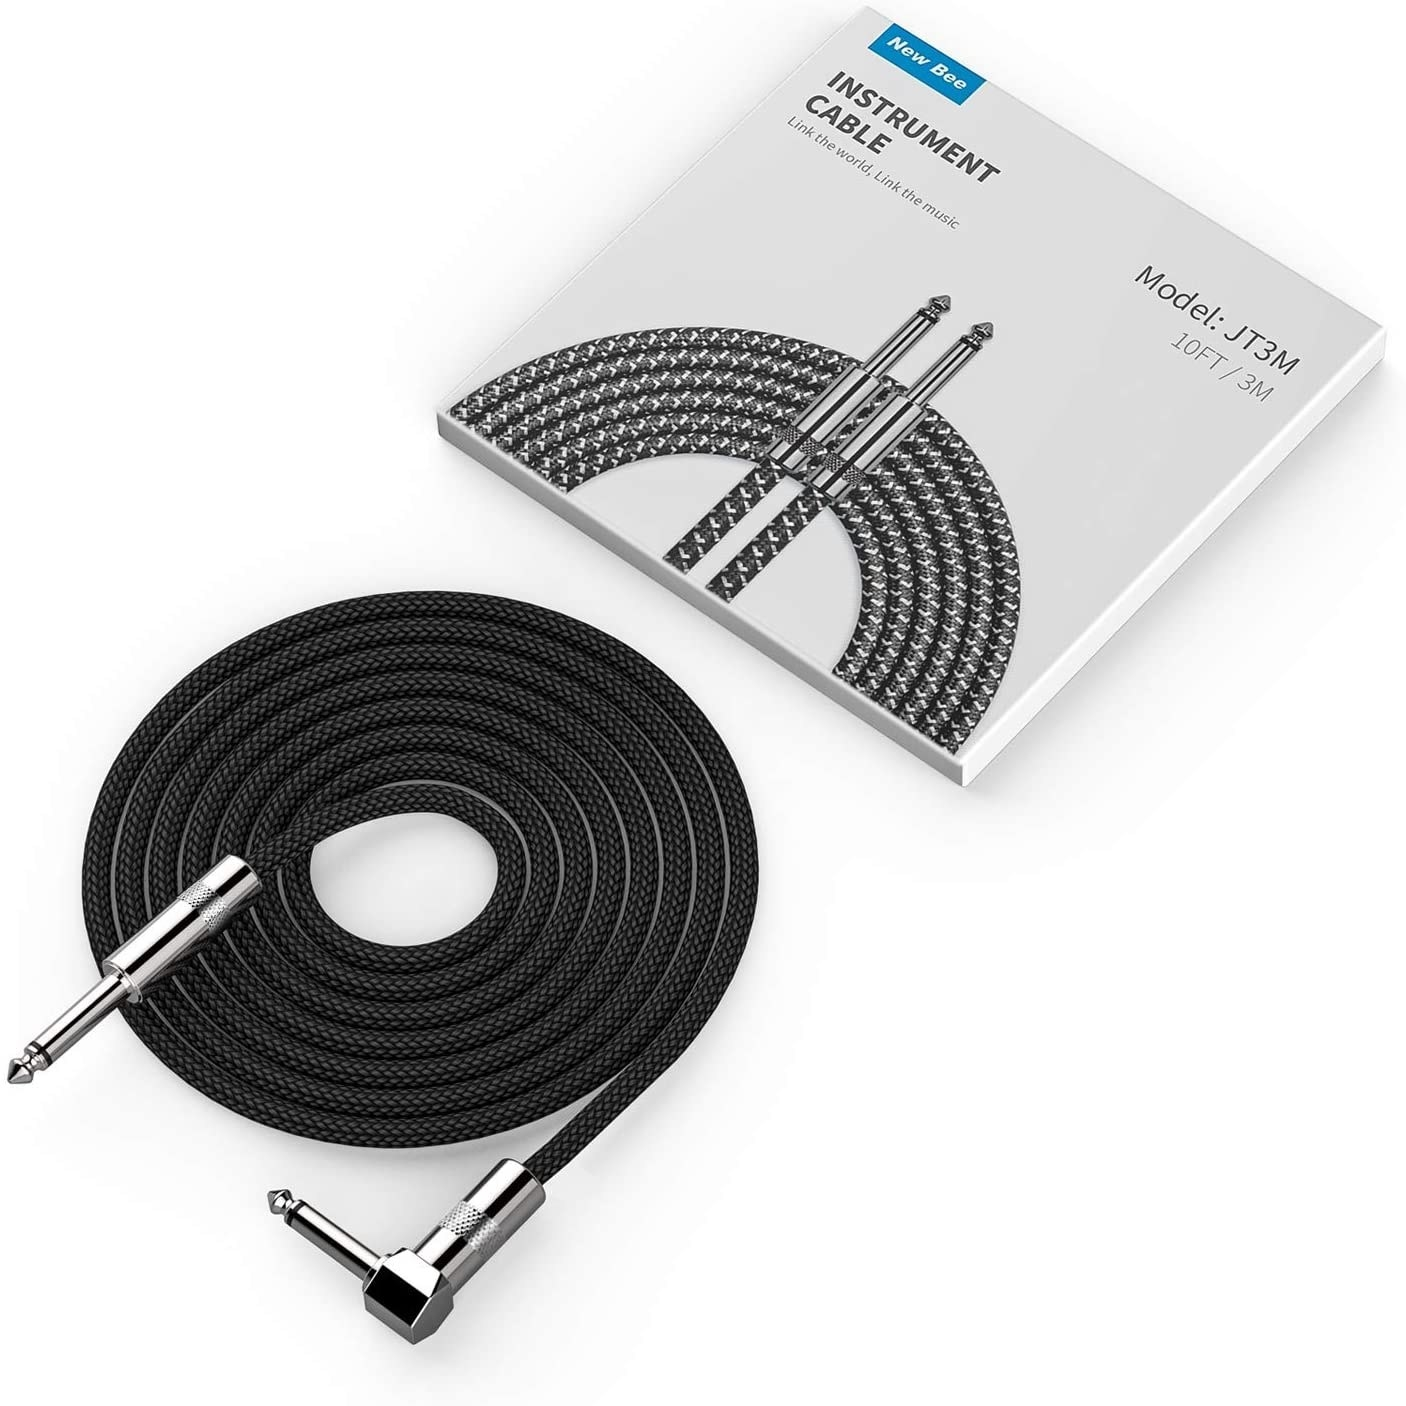 The cable coiled up next to its packaging